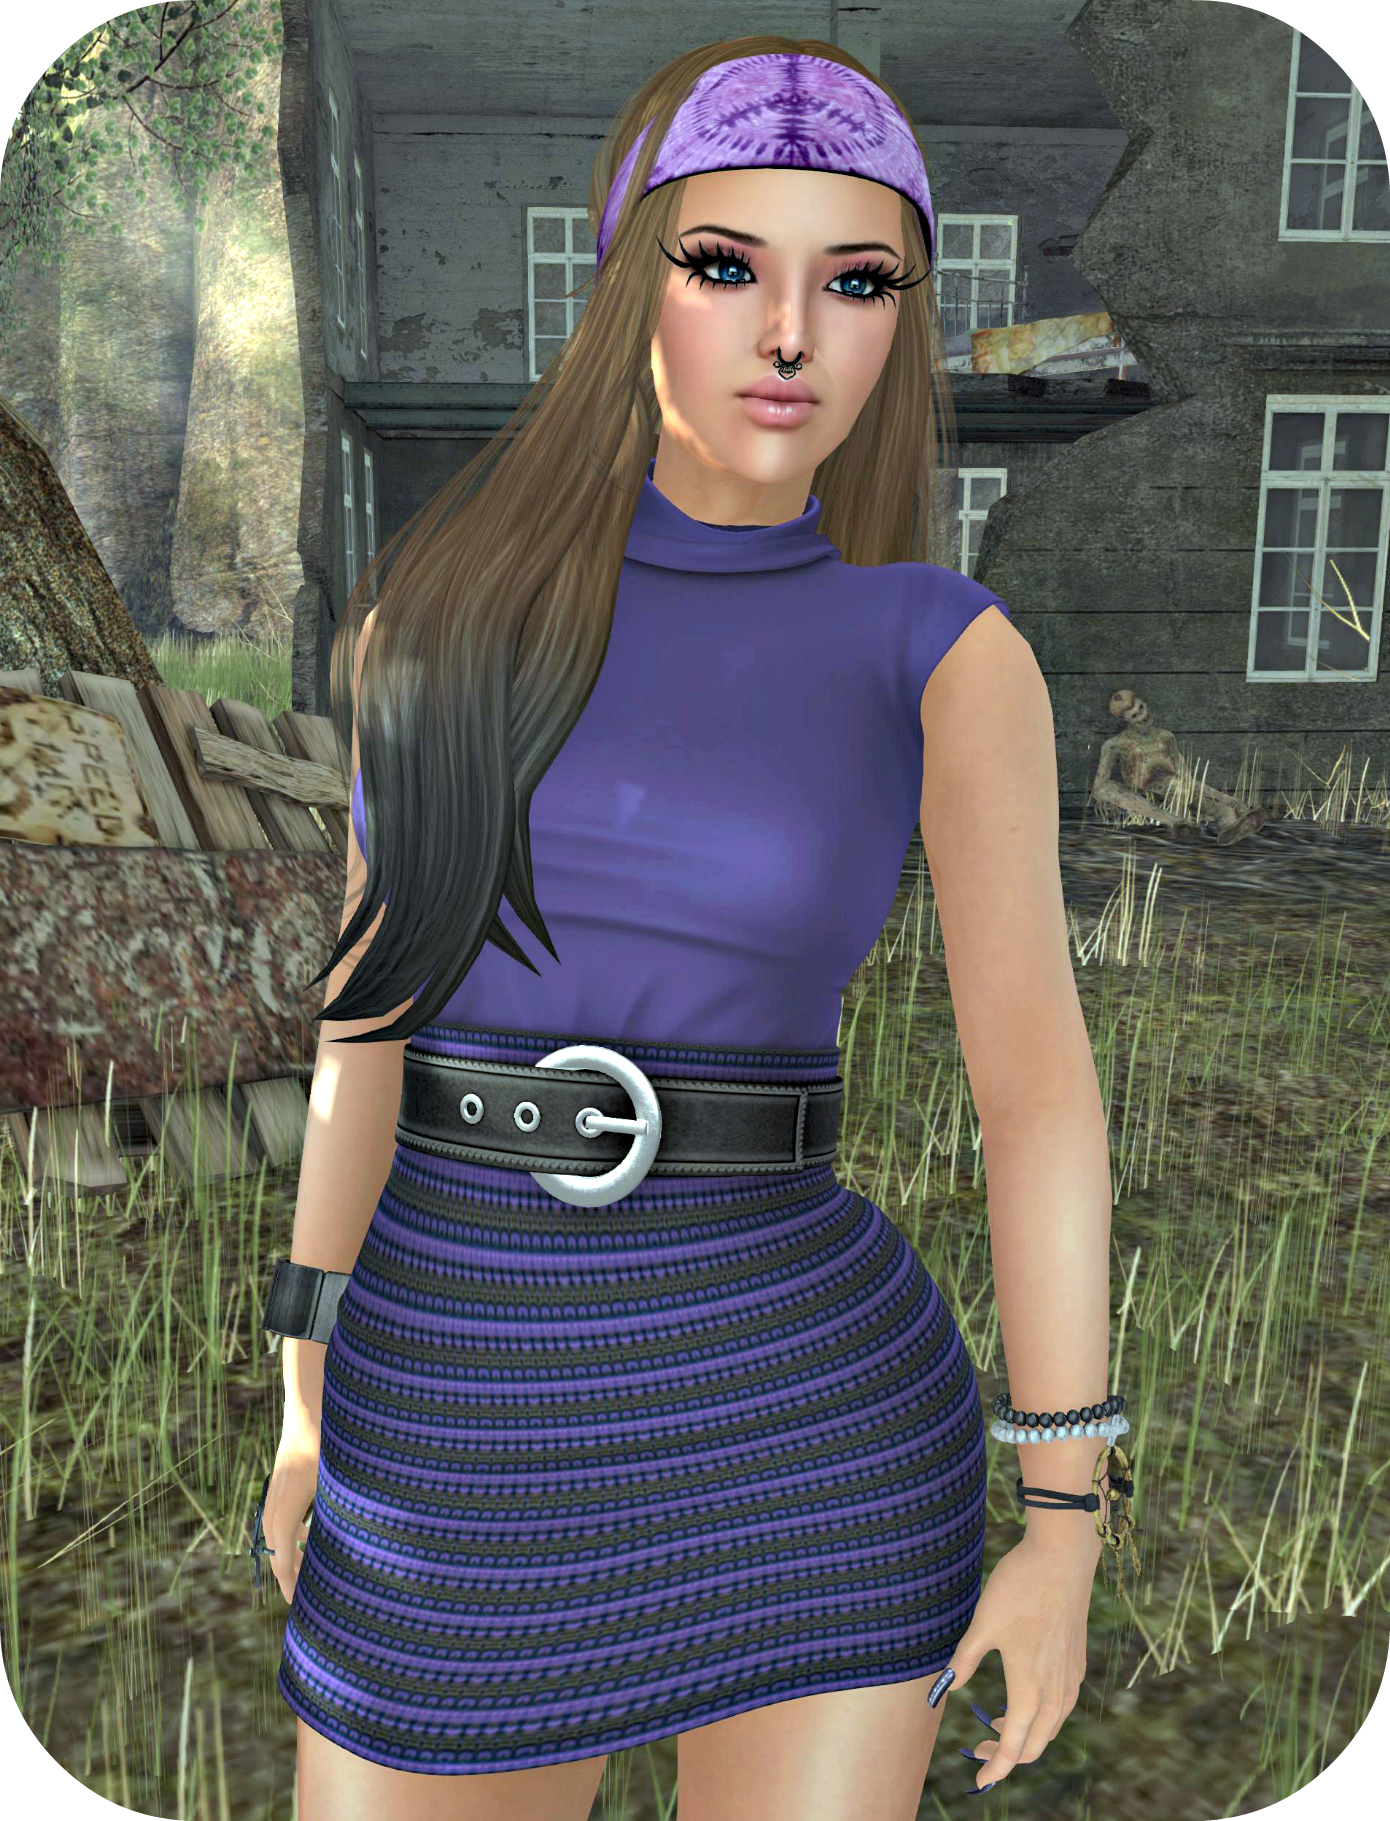 Tameless, GA, 7Deadly, Bedazzled, Lindy, Reign, Uber, Piercing, ZoZ, Baubles ED 4hs_cropped